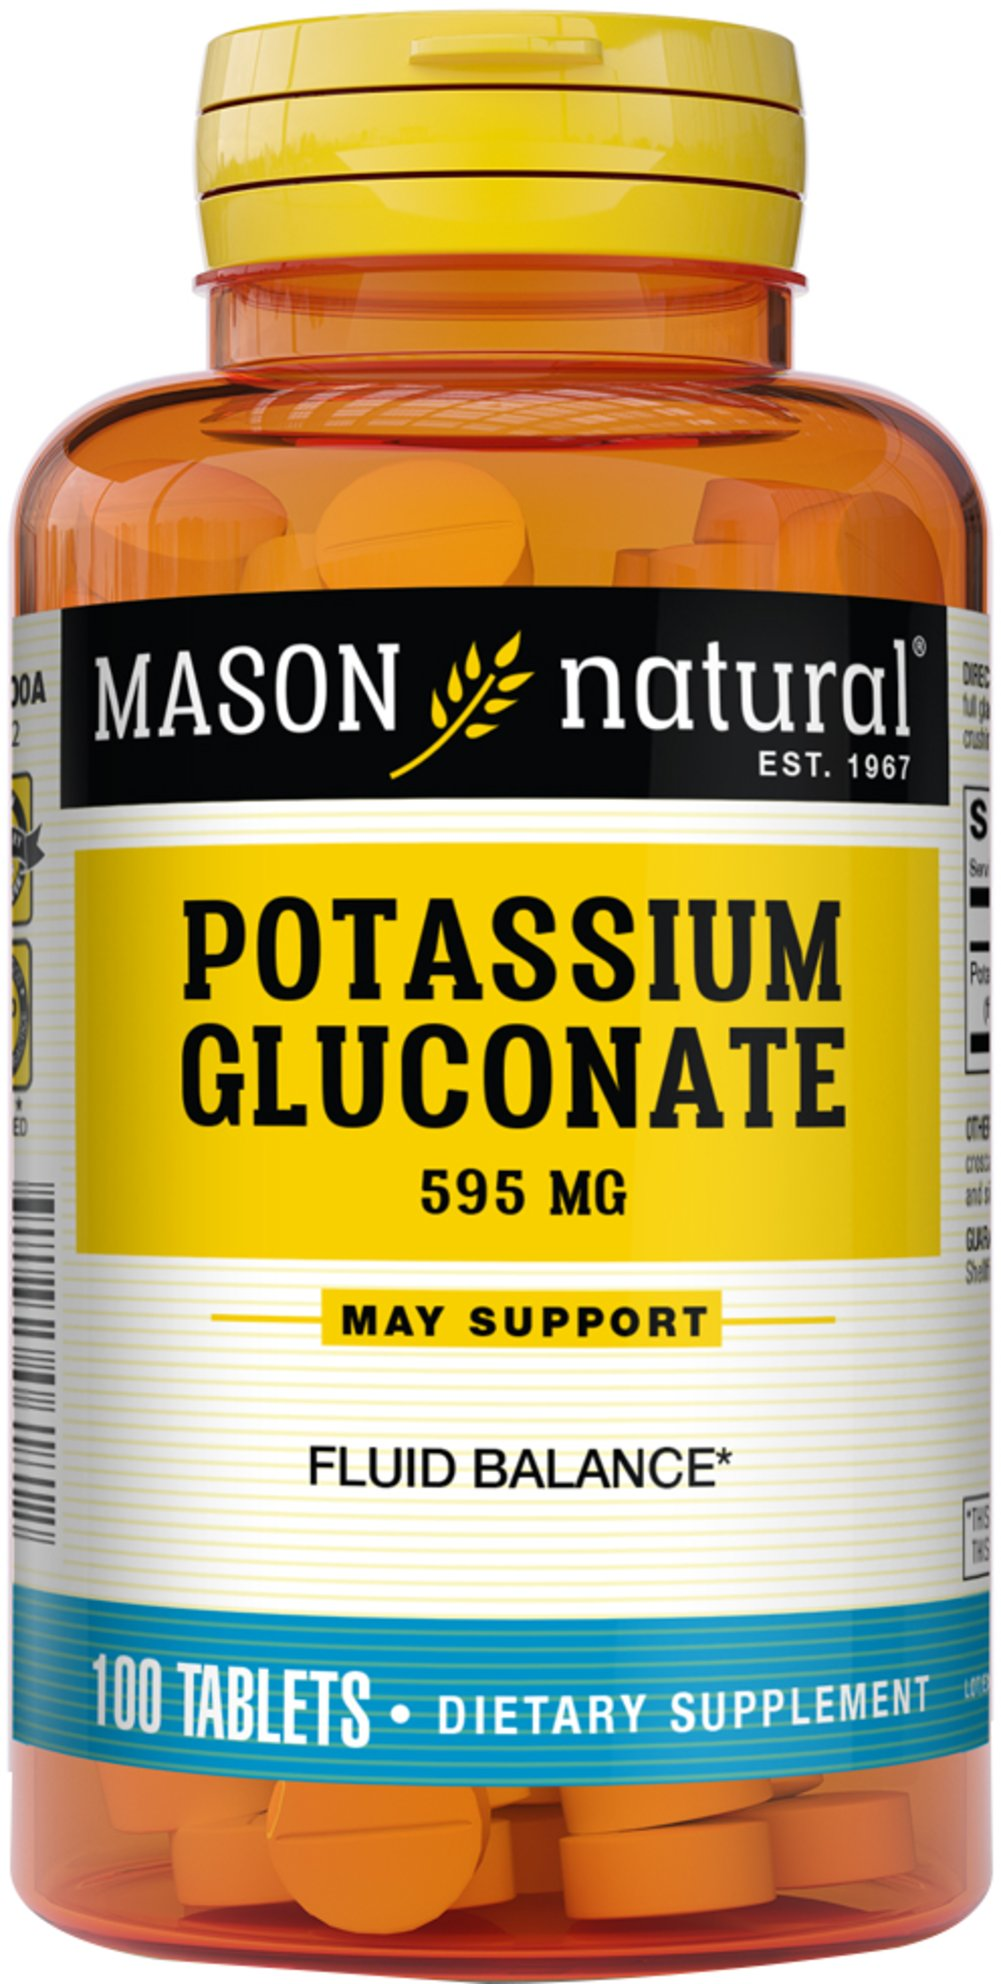 Potassium Gluconate 595 mg Thumbnail Alternate Bottle View